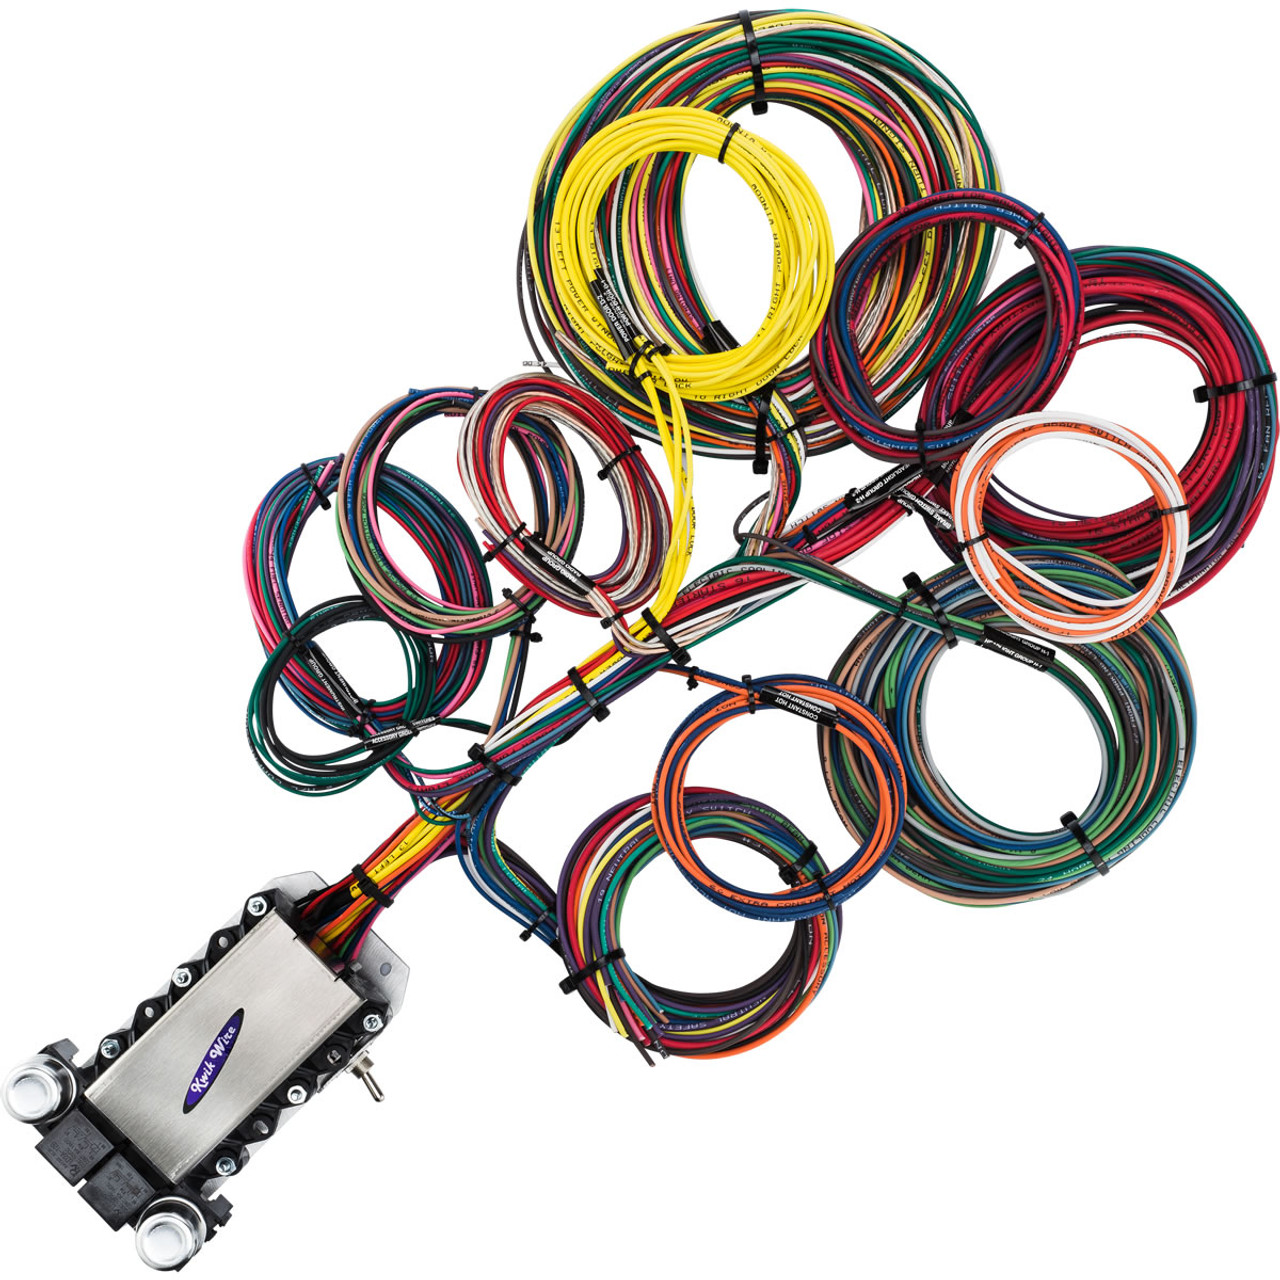 22 Circuit Wire Harness Electrify Your Ride Typical Wiring Schematic For Street Rod